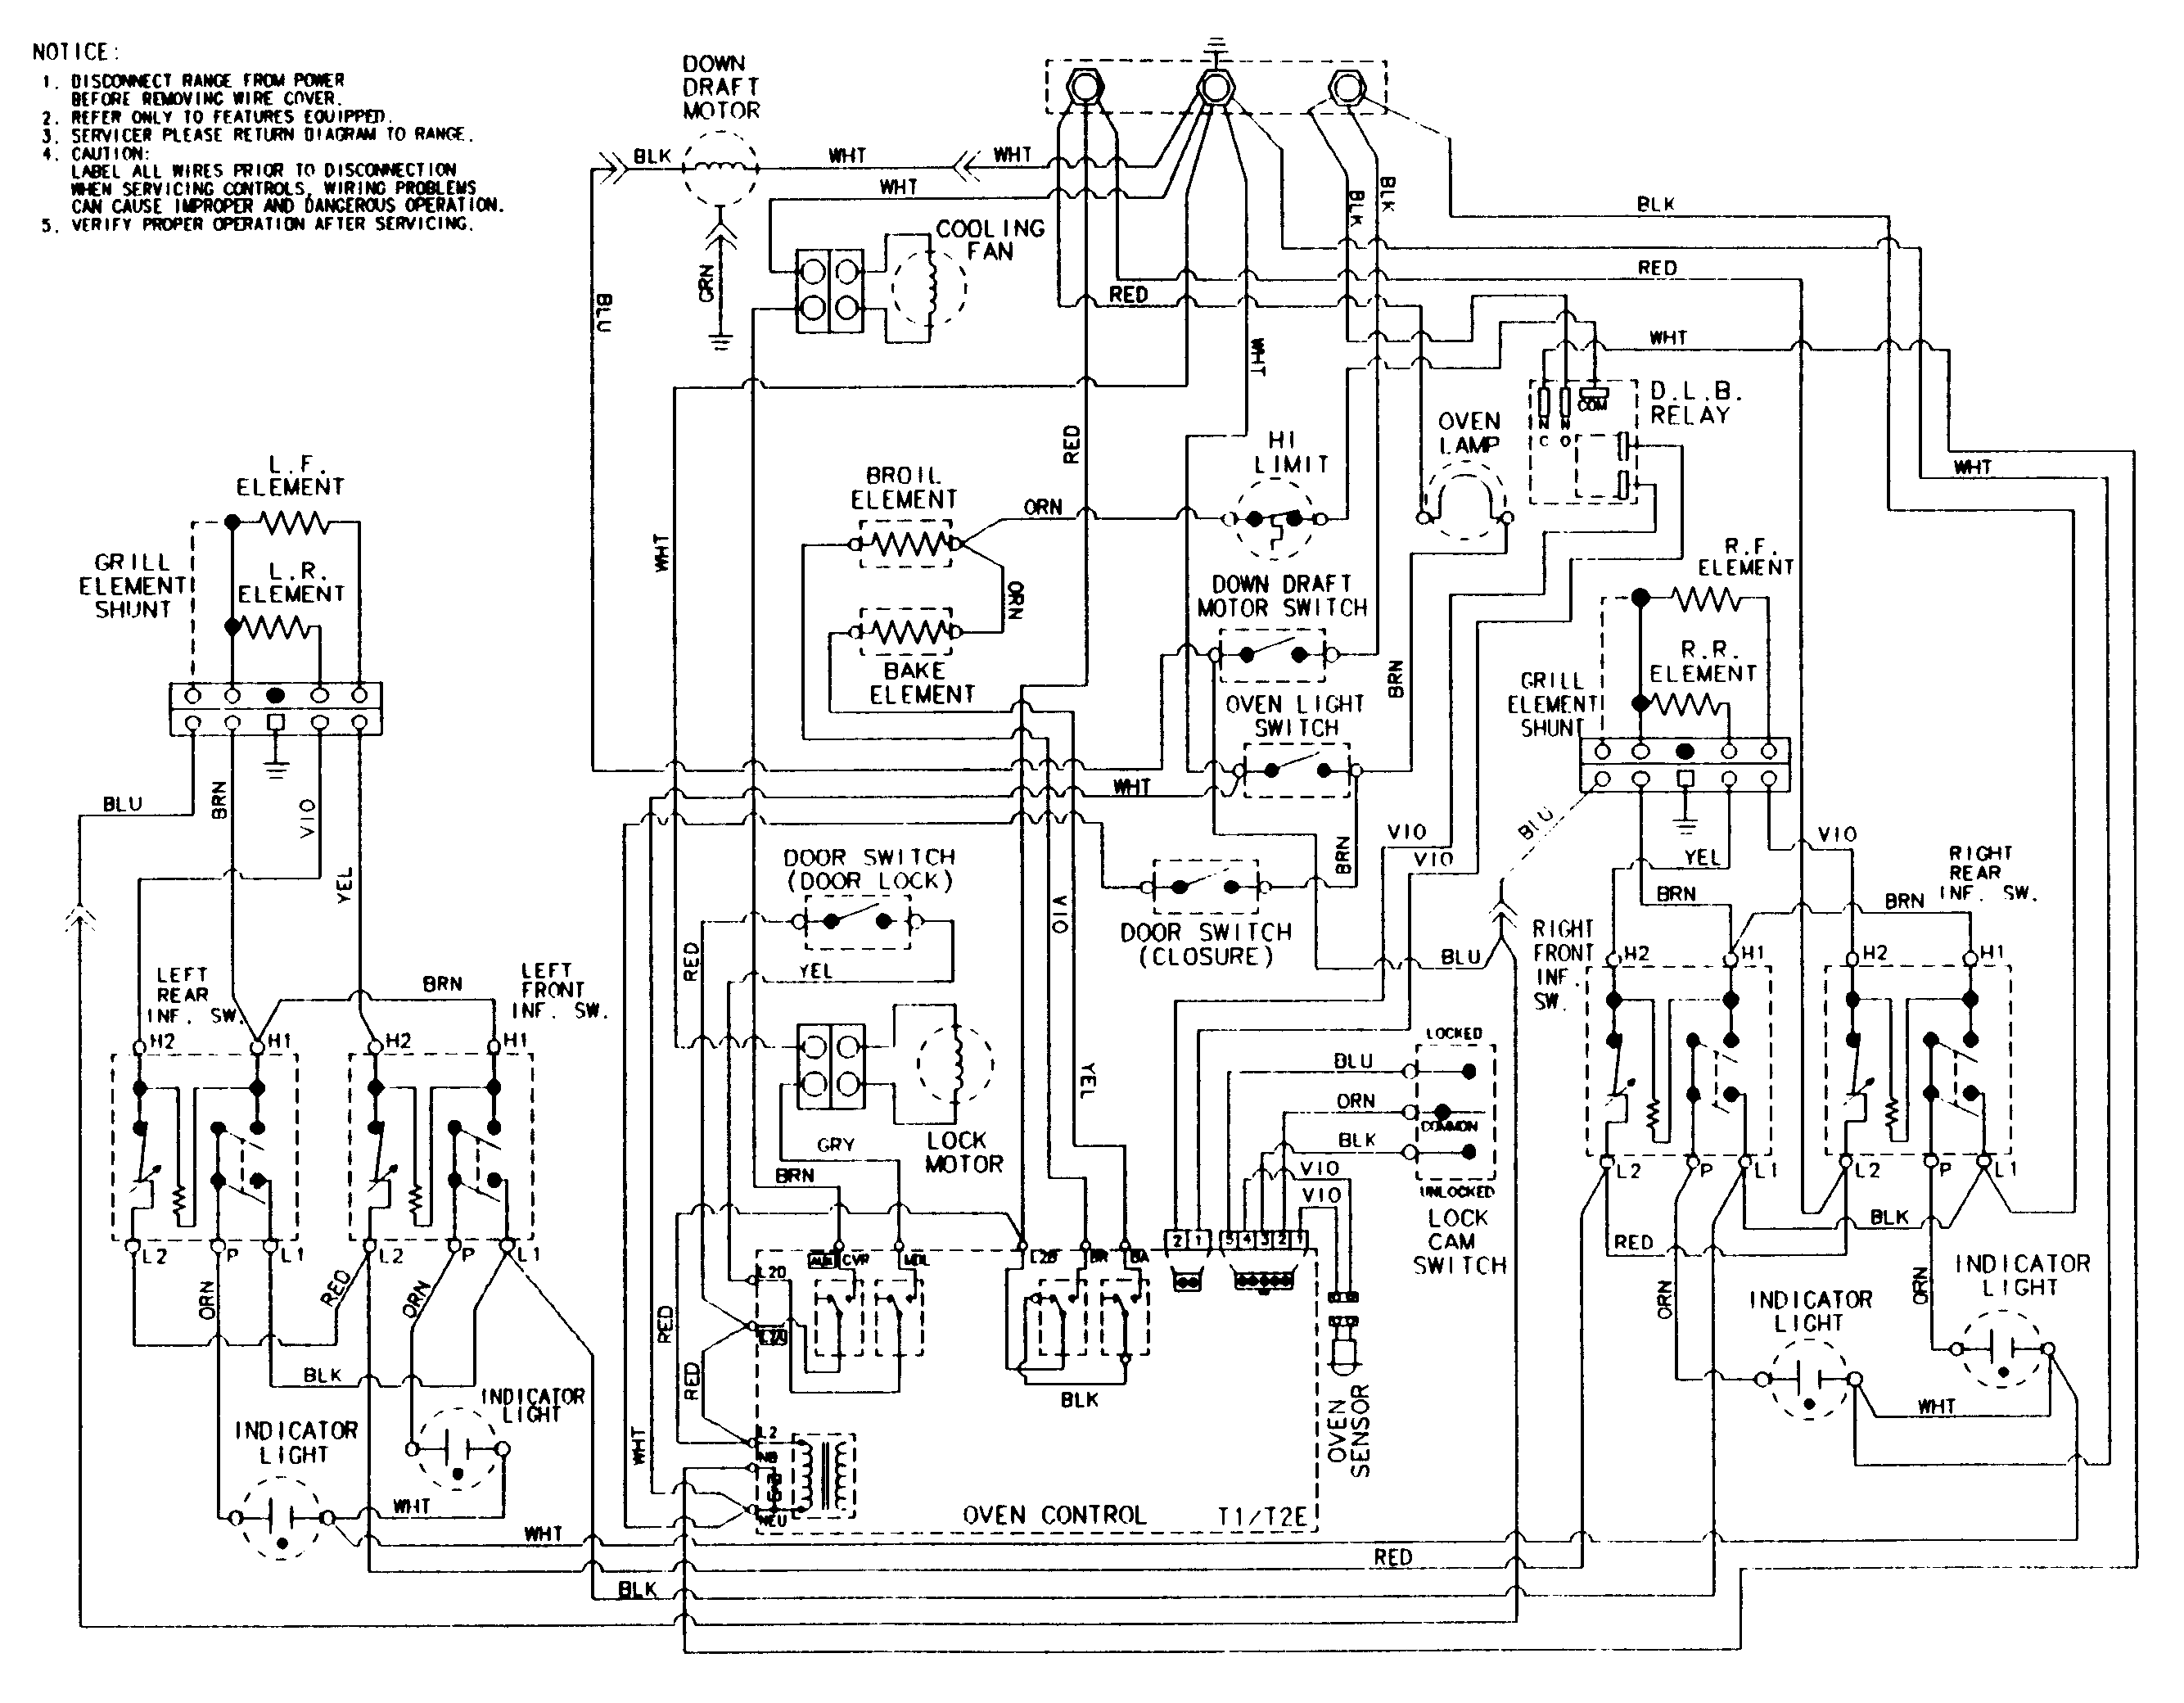 wiring information sve47100bc wc ser 14 parts maytag sve47100 electric slide in range timer stove clocks and long 2360 tractor wiring diagram at edmiracle.co